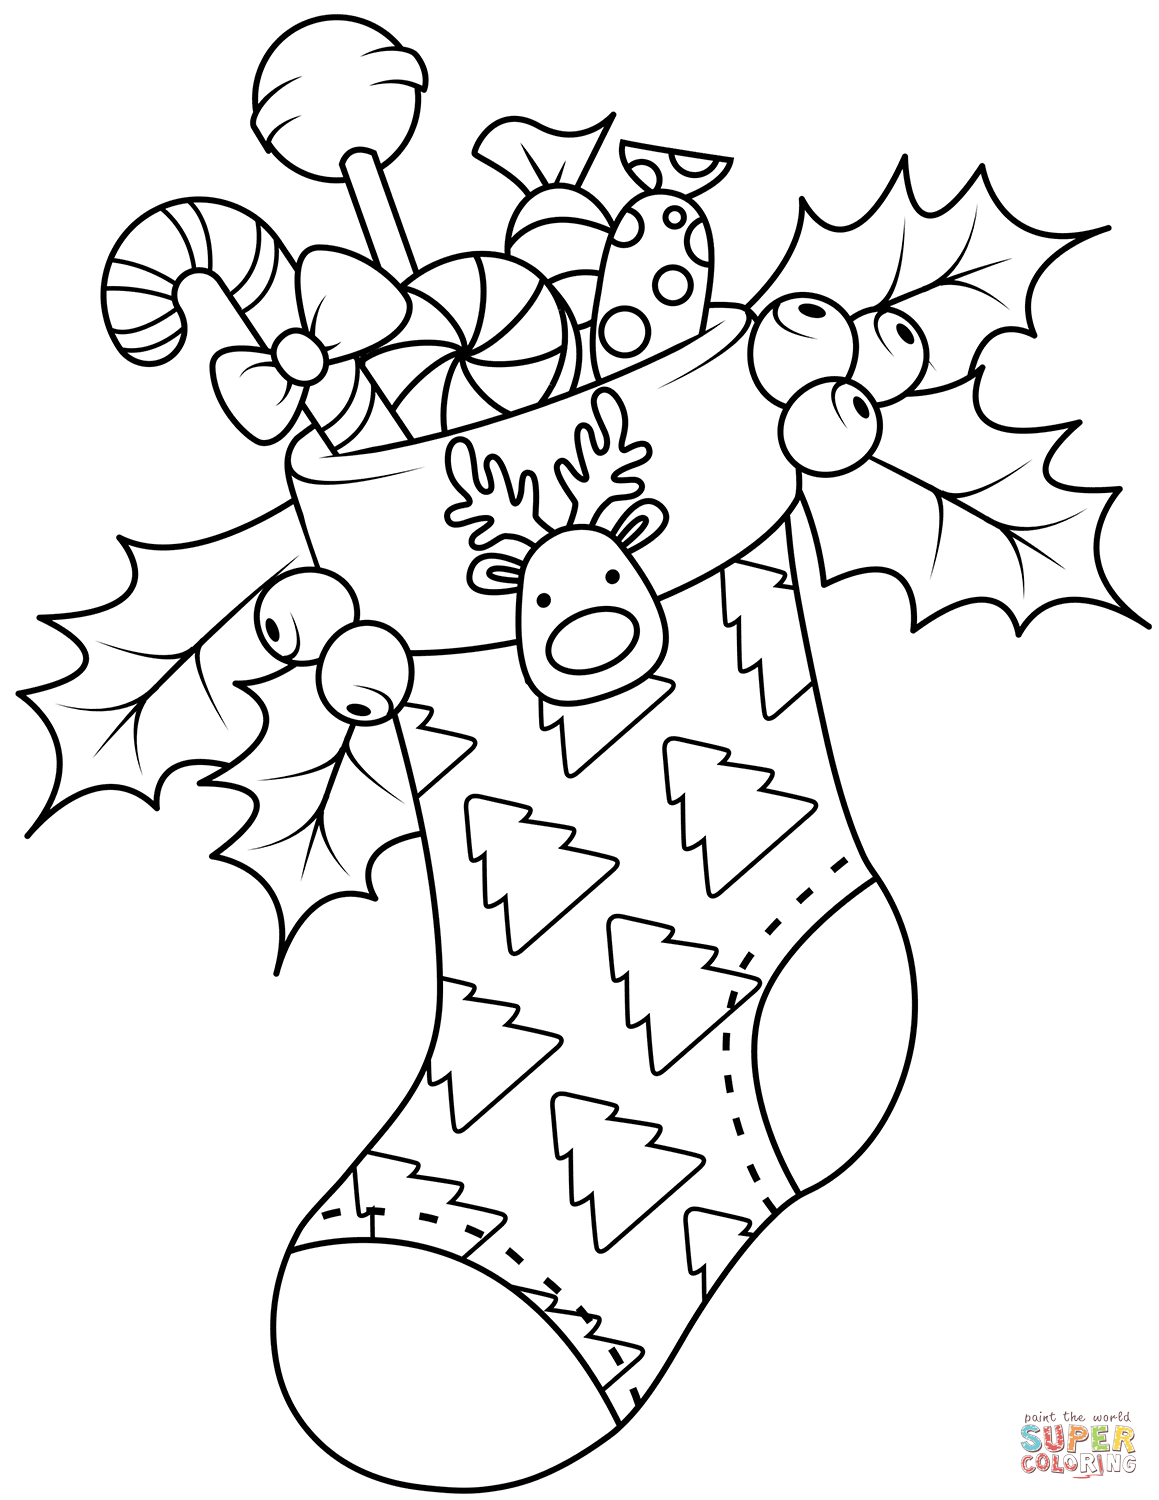 christmas baubles to colour in plain christmas stocking coloring pages at getcolorings christmas to baubles colour in